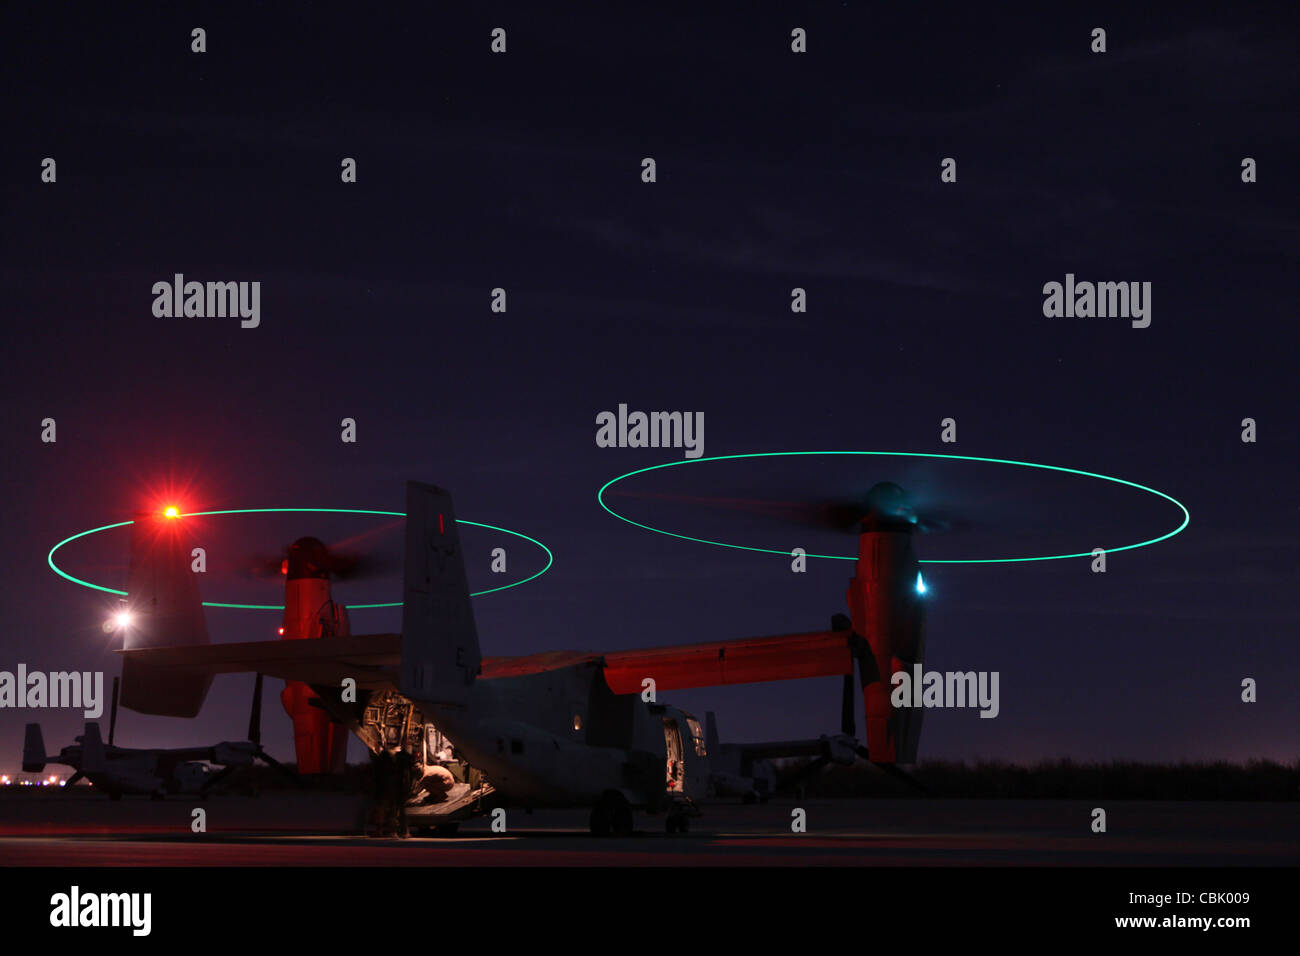 Marine Aviation Weapons and Tactics Squadron One MV-22 Osprey in night time exposure - Stock Image